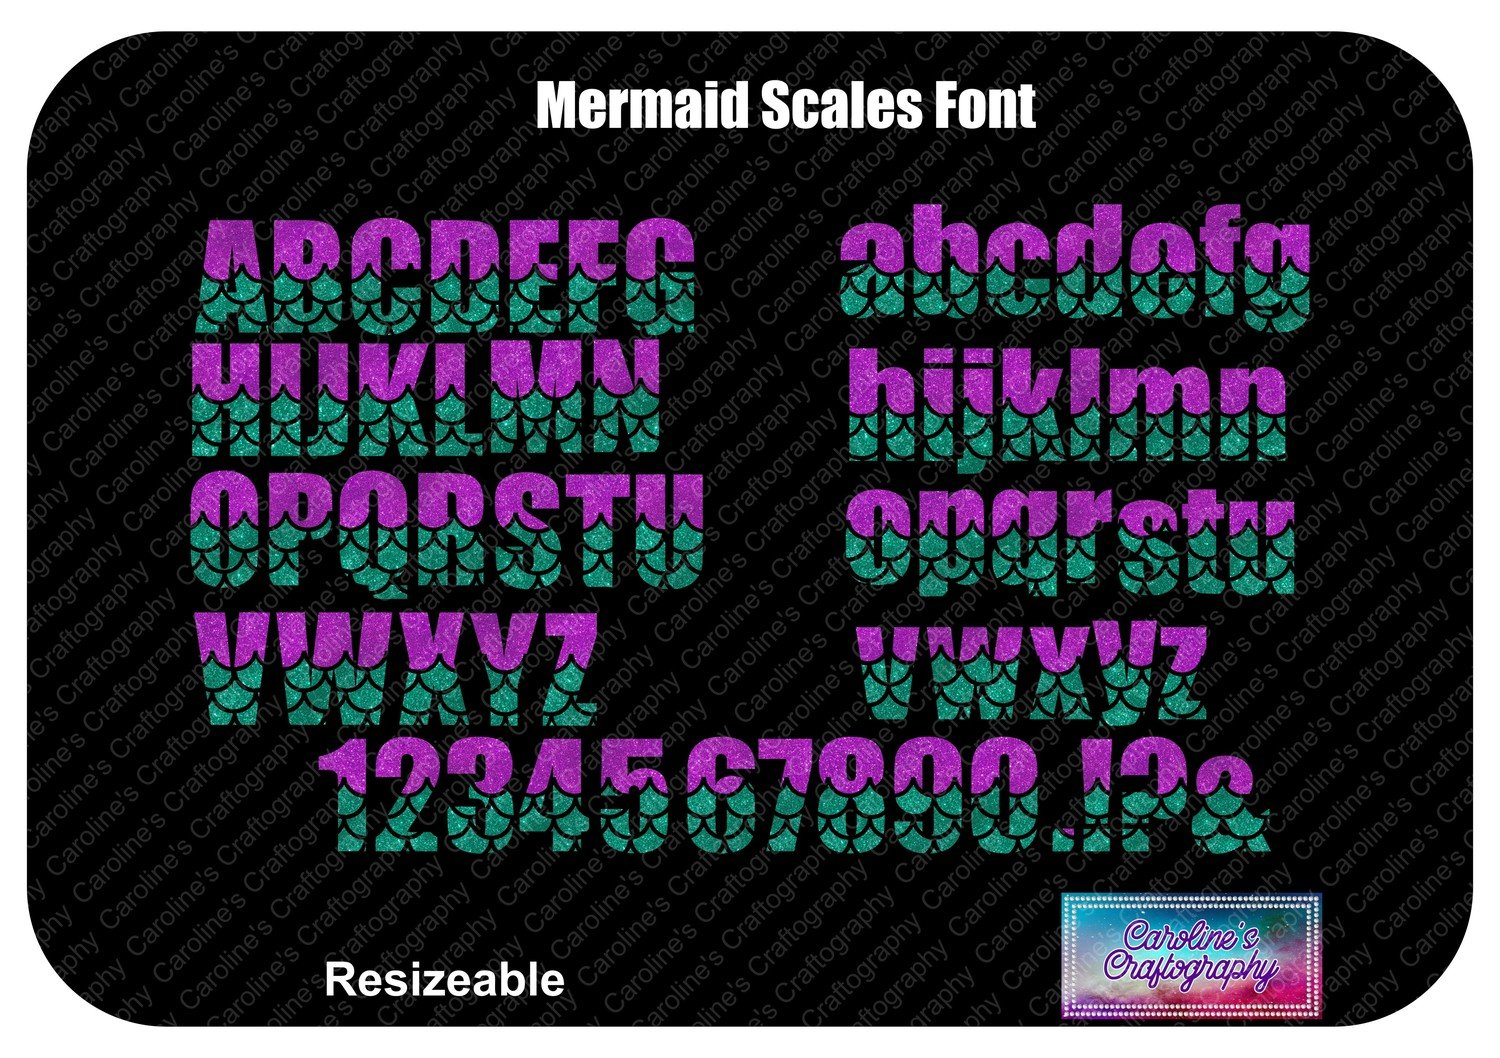 Mermaid Scales Font Vinyl